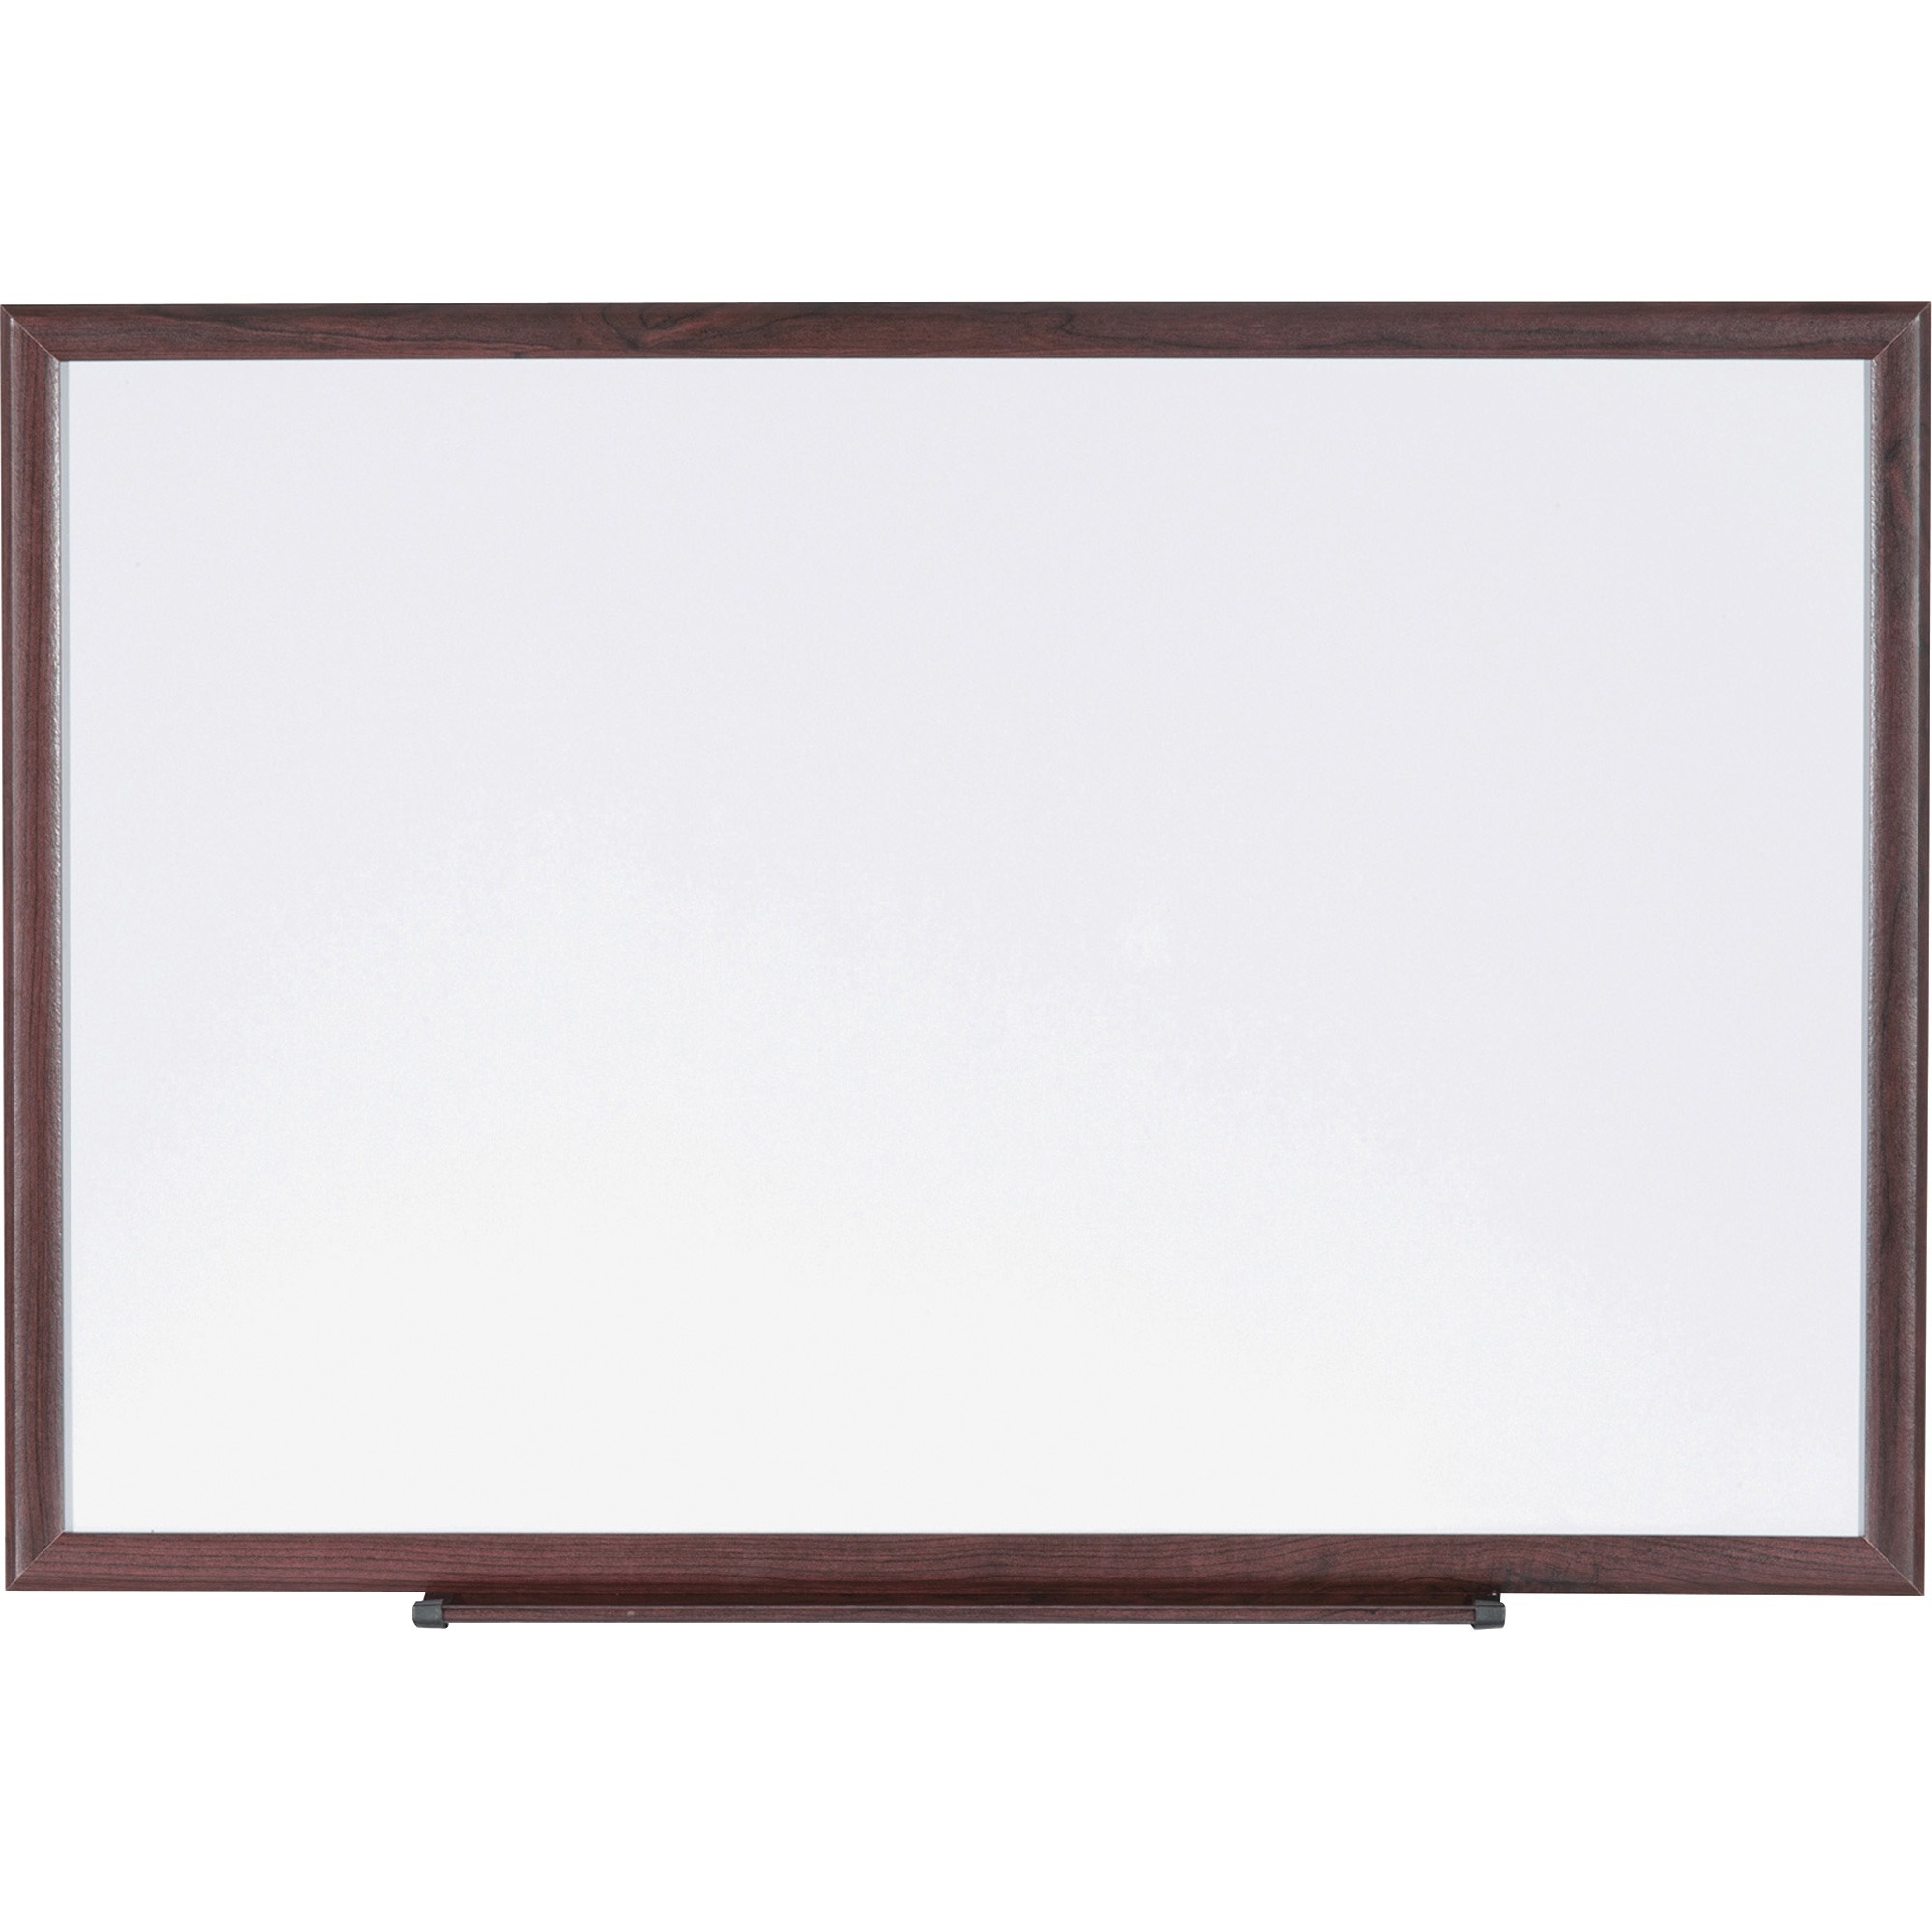 Lorell, LLR84167, Wood Frame Dry-Erase Marker Boards, 1 Each